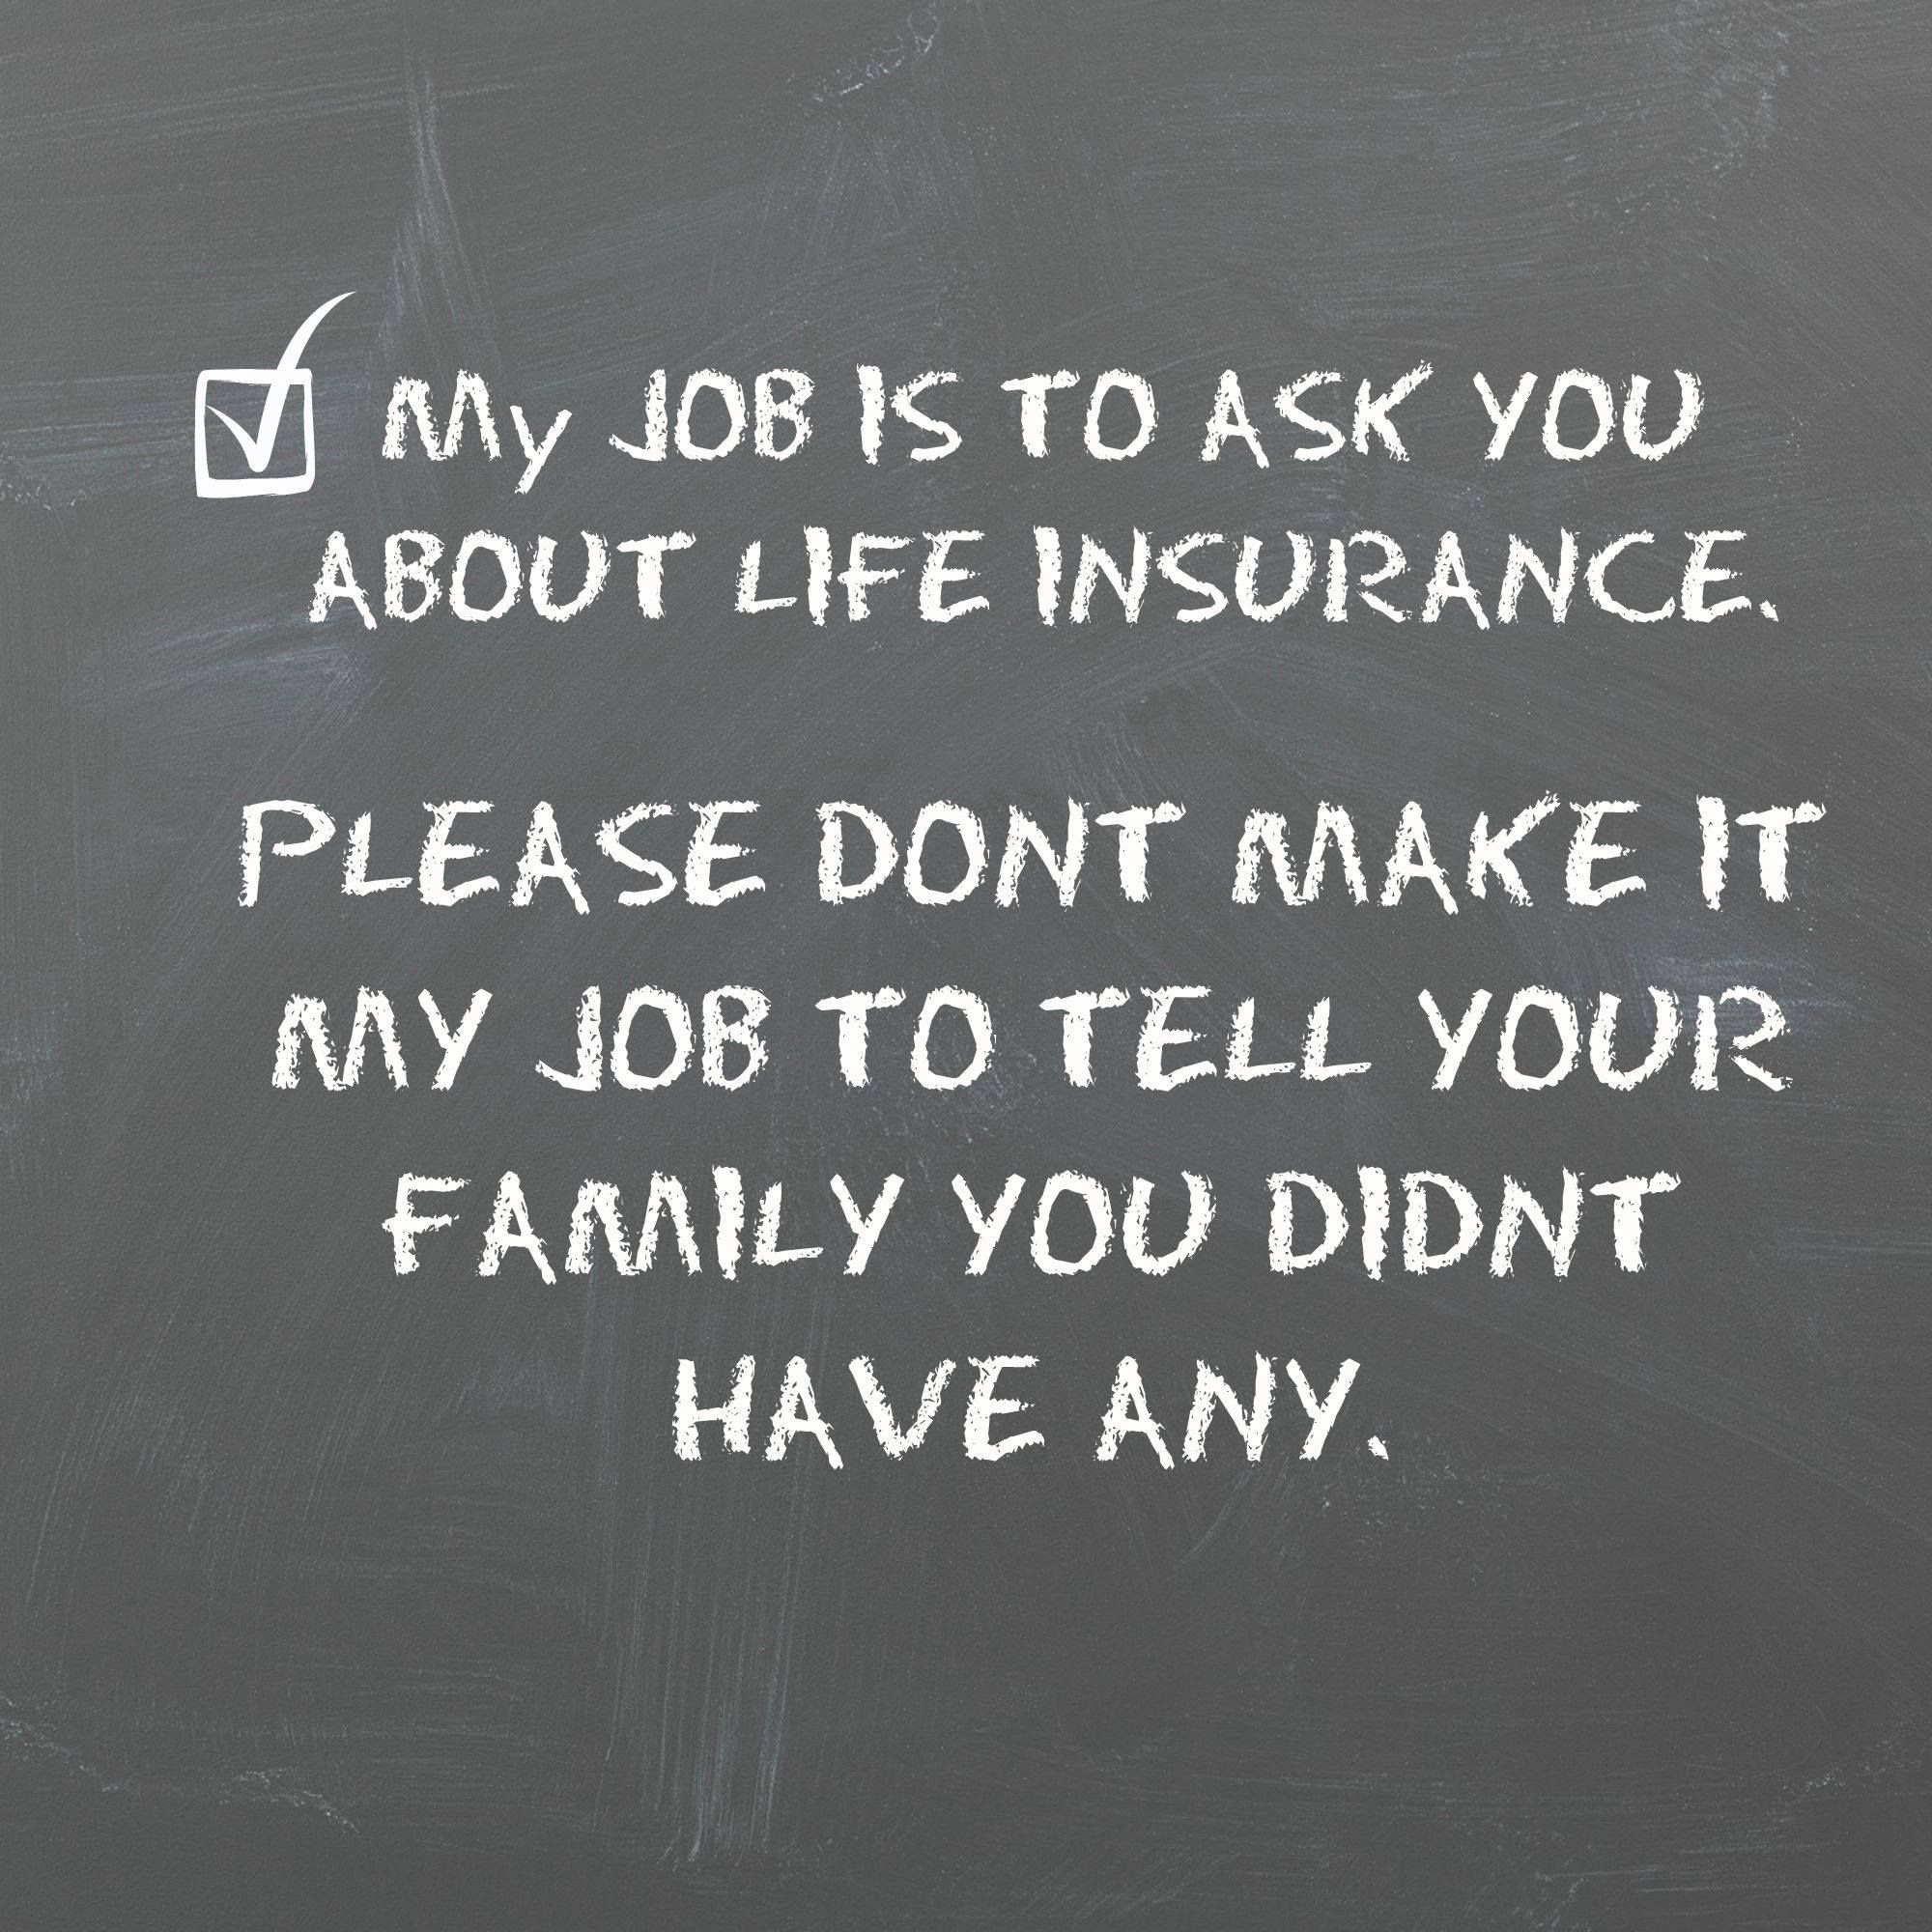 Life Insurance Quote Inspiration Call Us For Any #lifeinsurance Questions That You Have At 330225